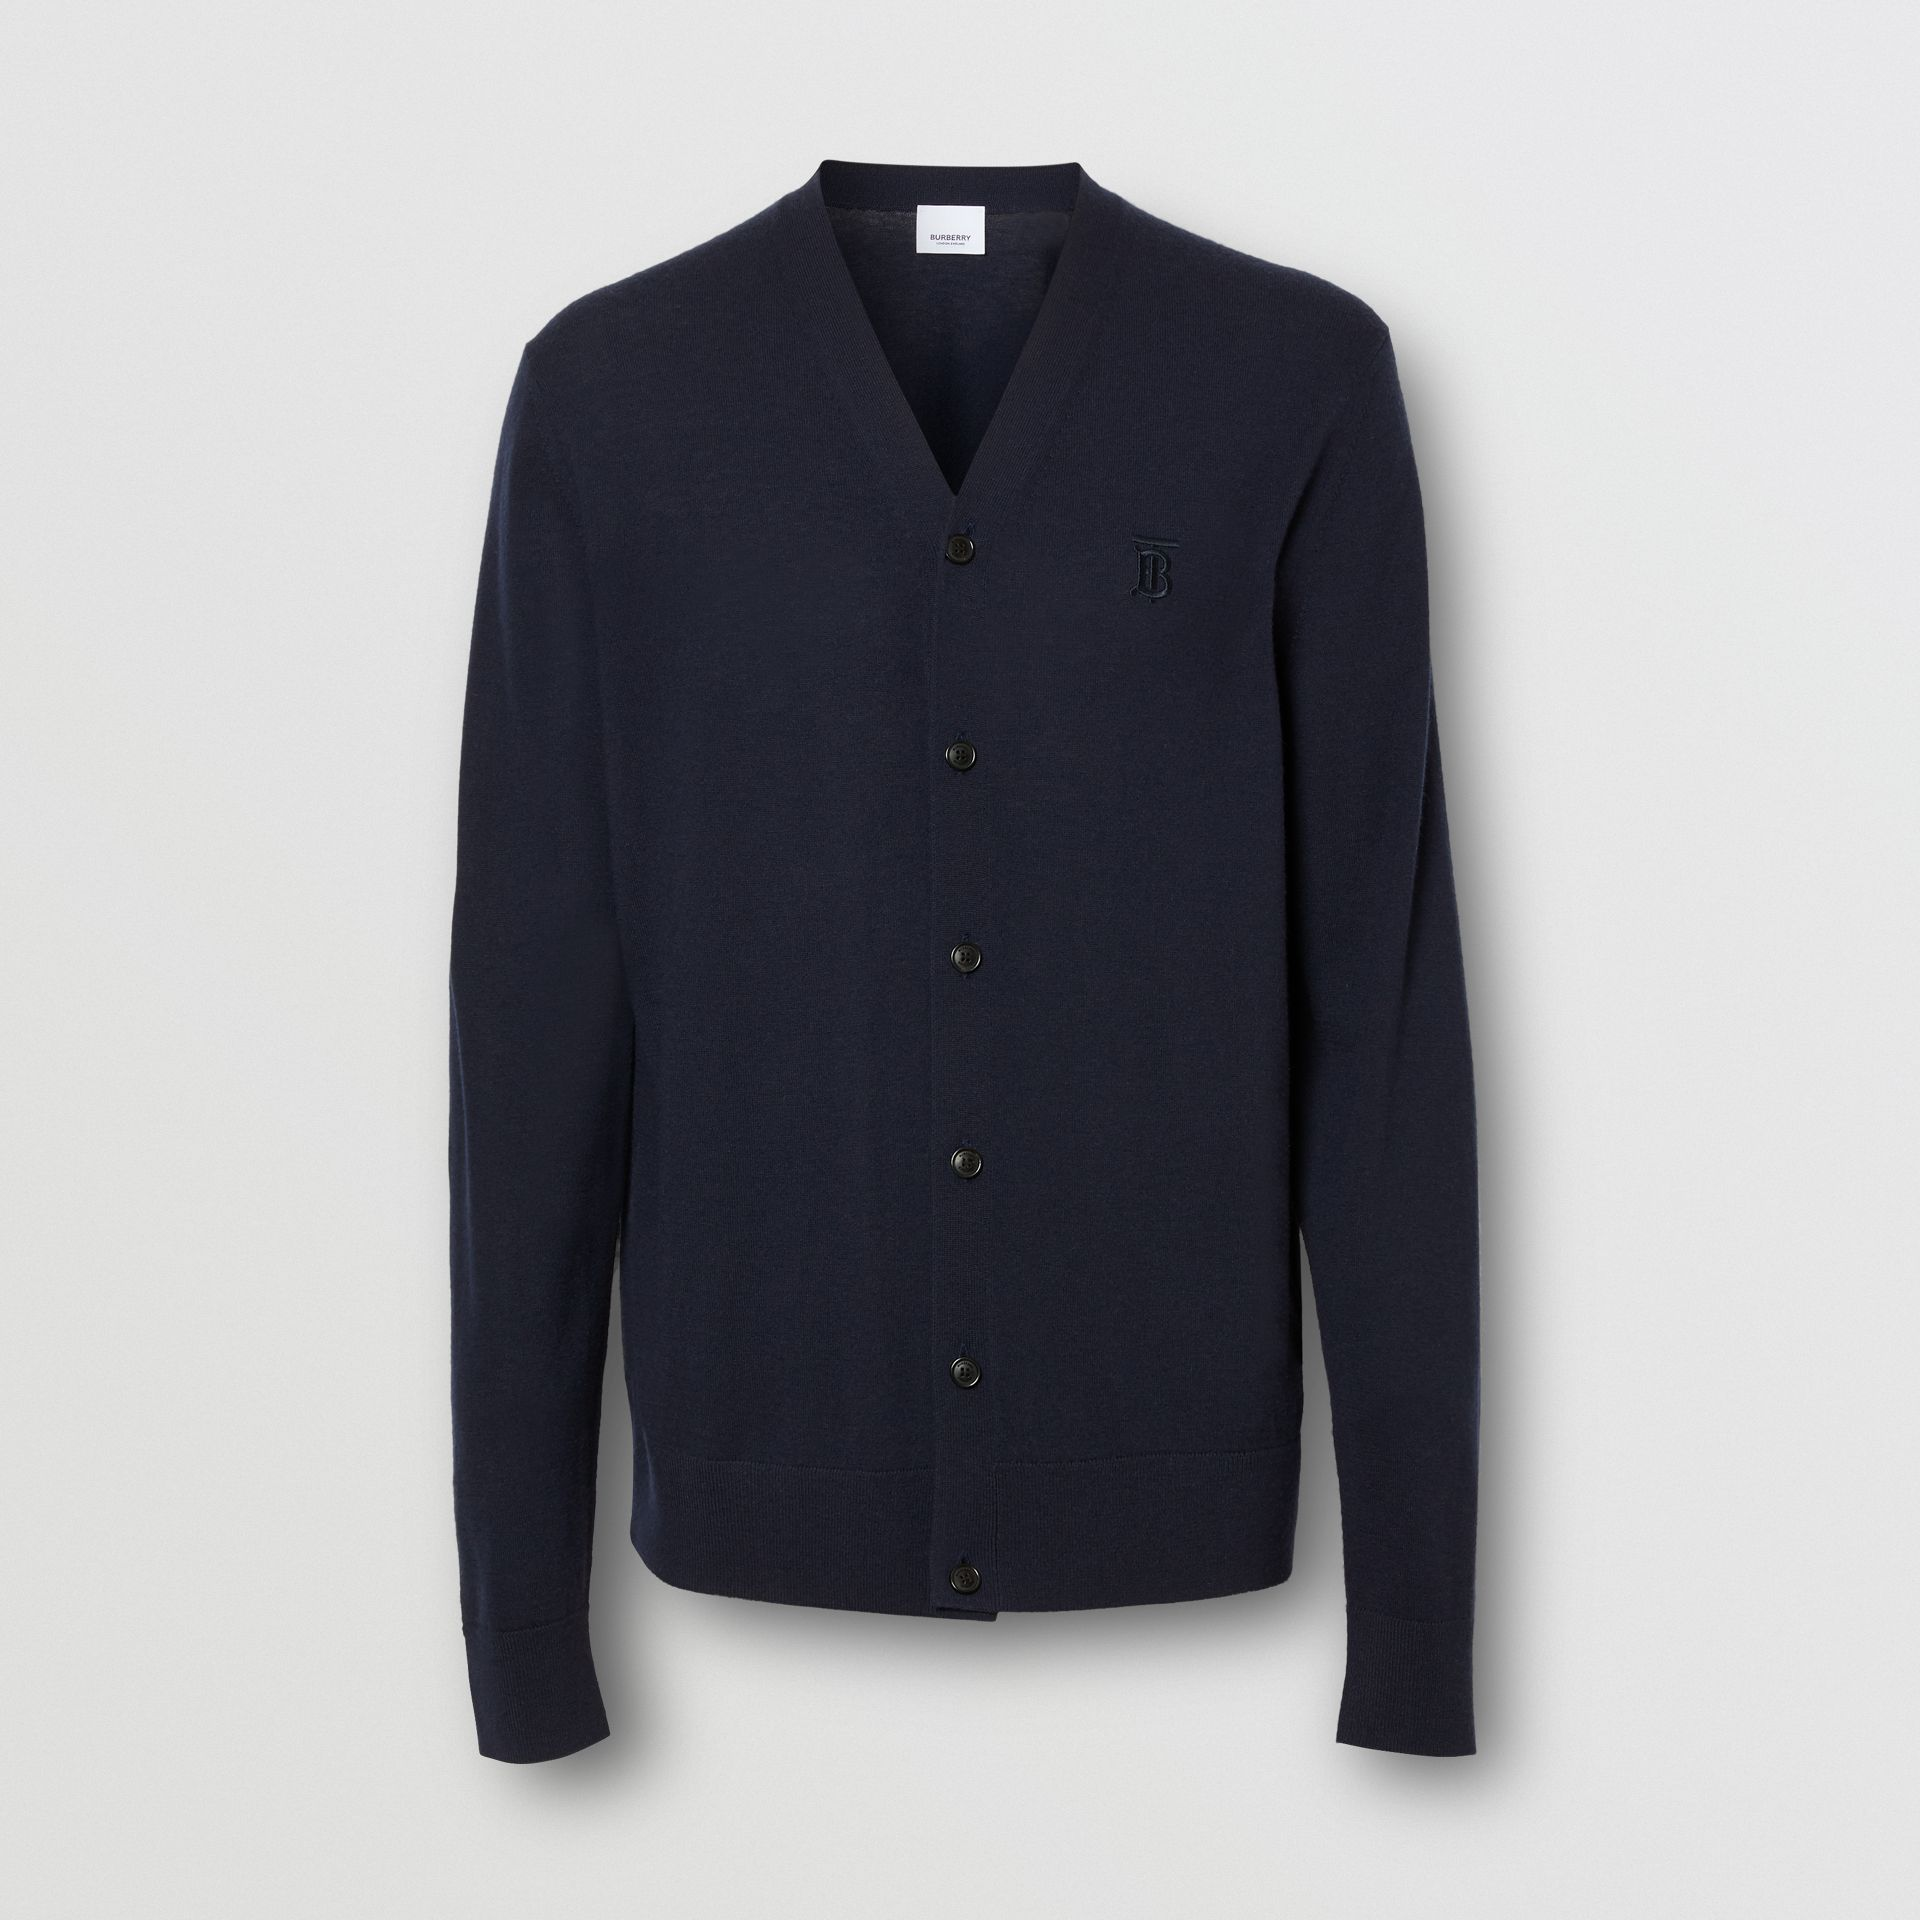 Monogram Motif Cashmere Cardigan in Navy - Men | Burberry Hong Kong S.A.R - gallery image 3